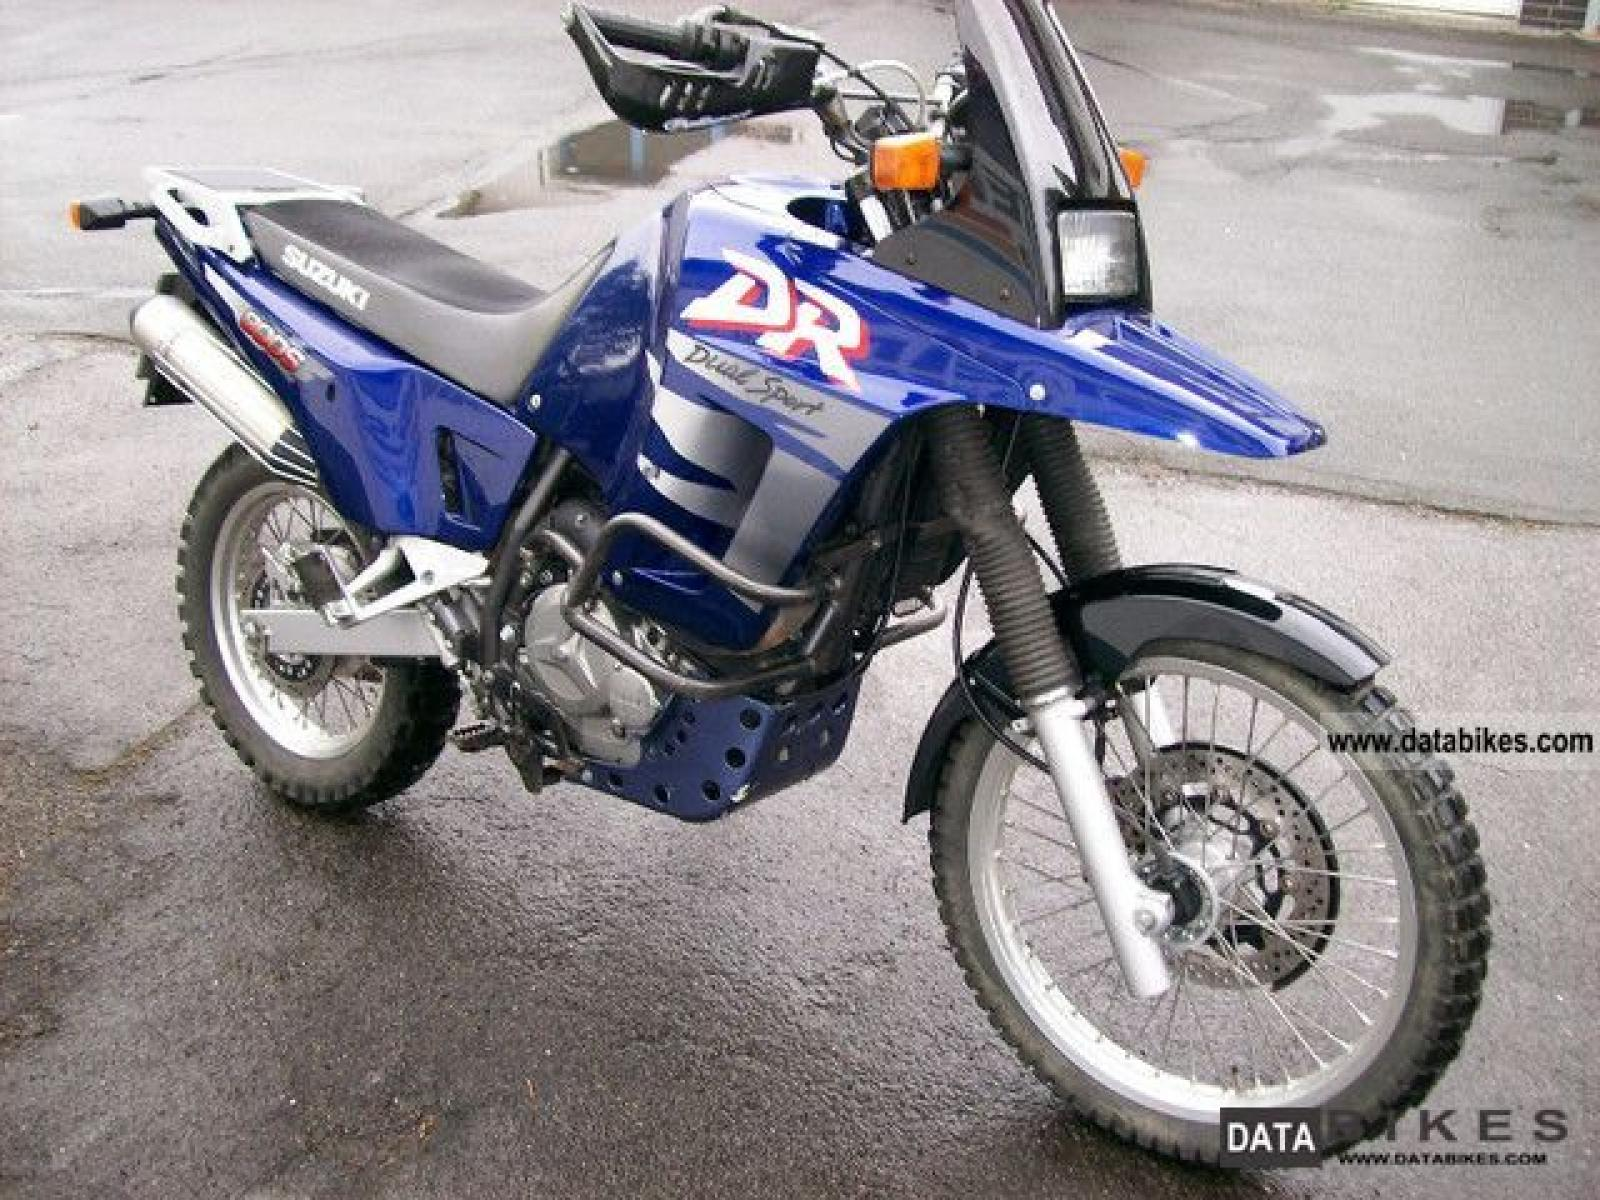 1999 suzuki dr 800 s pics specs and information. Black Bedroom Furniture Sets. Home Design Ideas